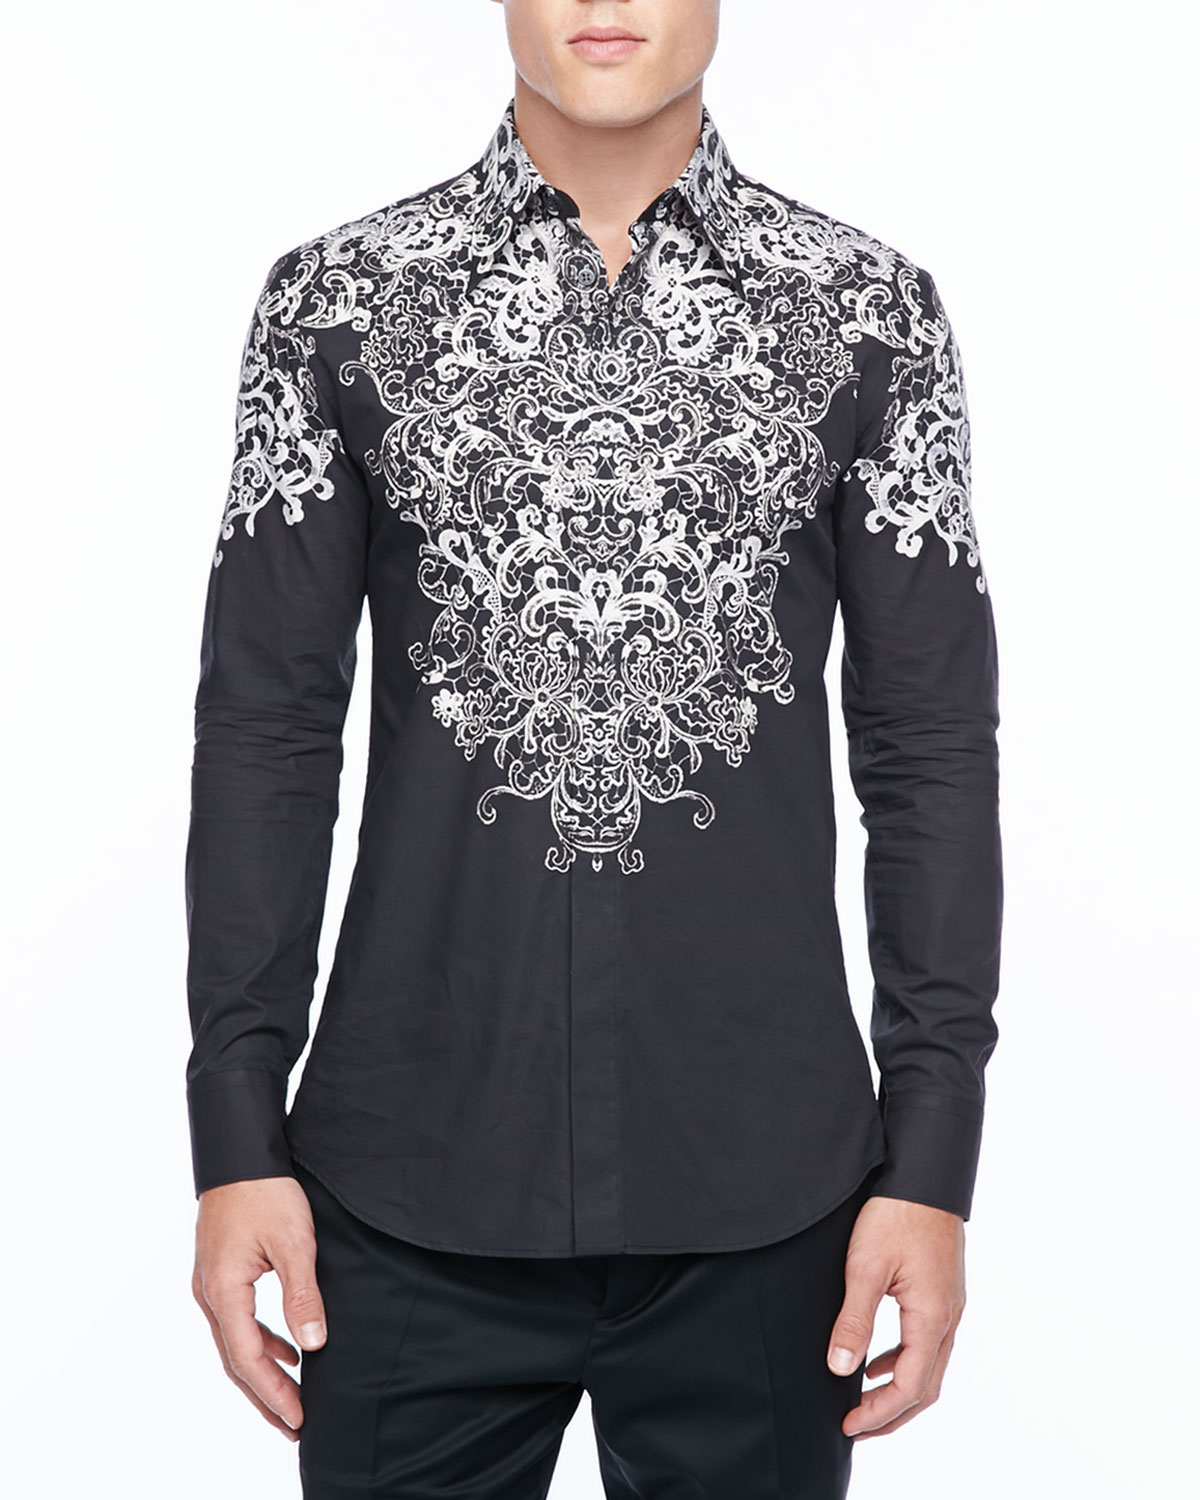 Mens Long Sleeve Shirt with Silver Lace Print, Black   Alexander McQueen